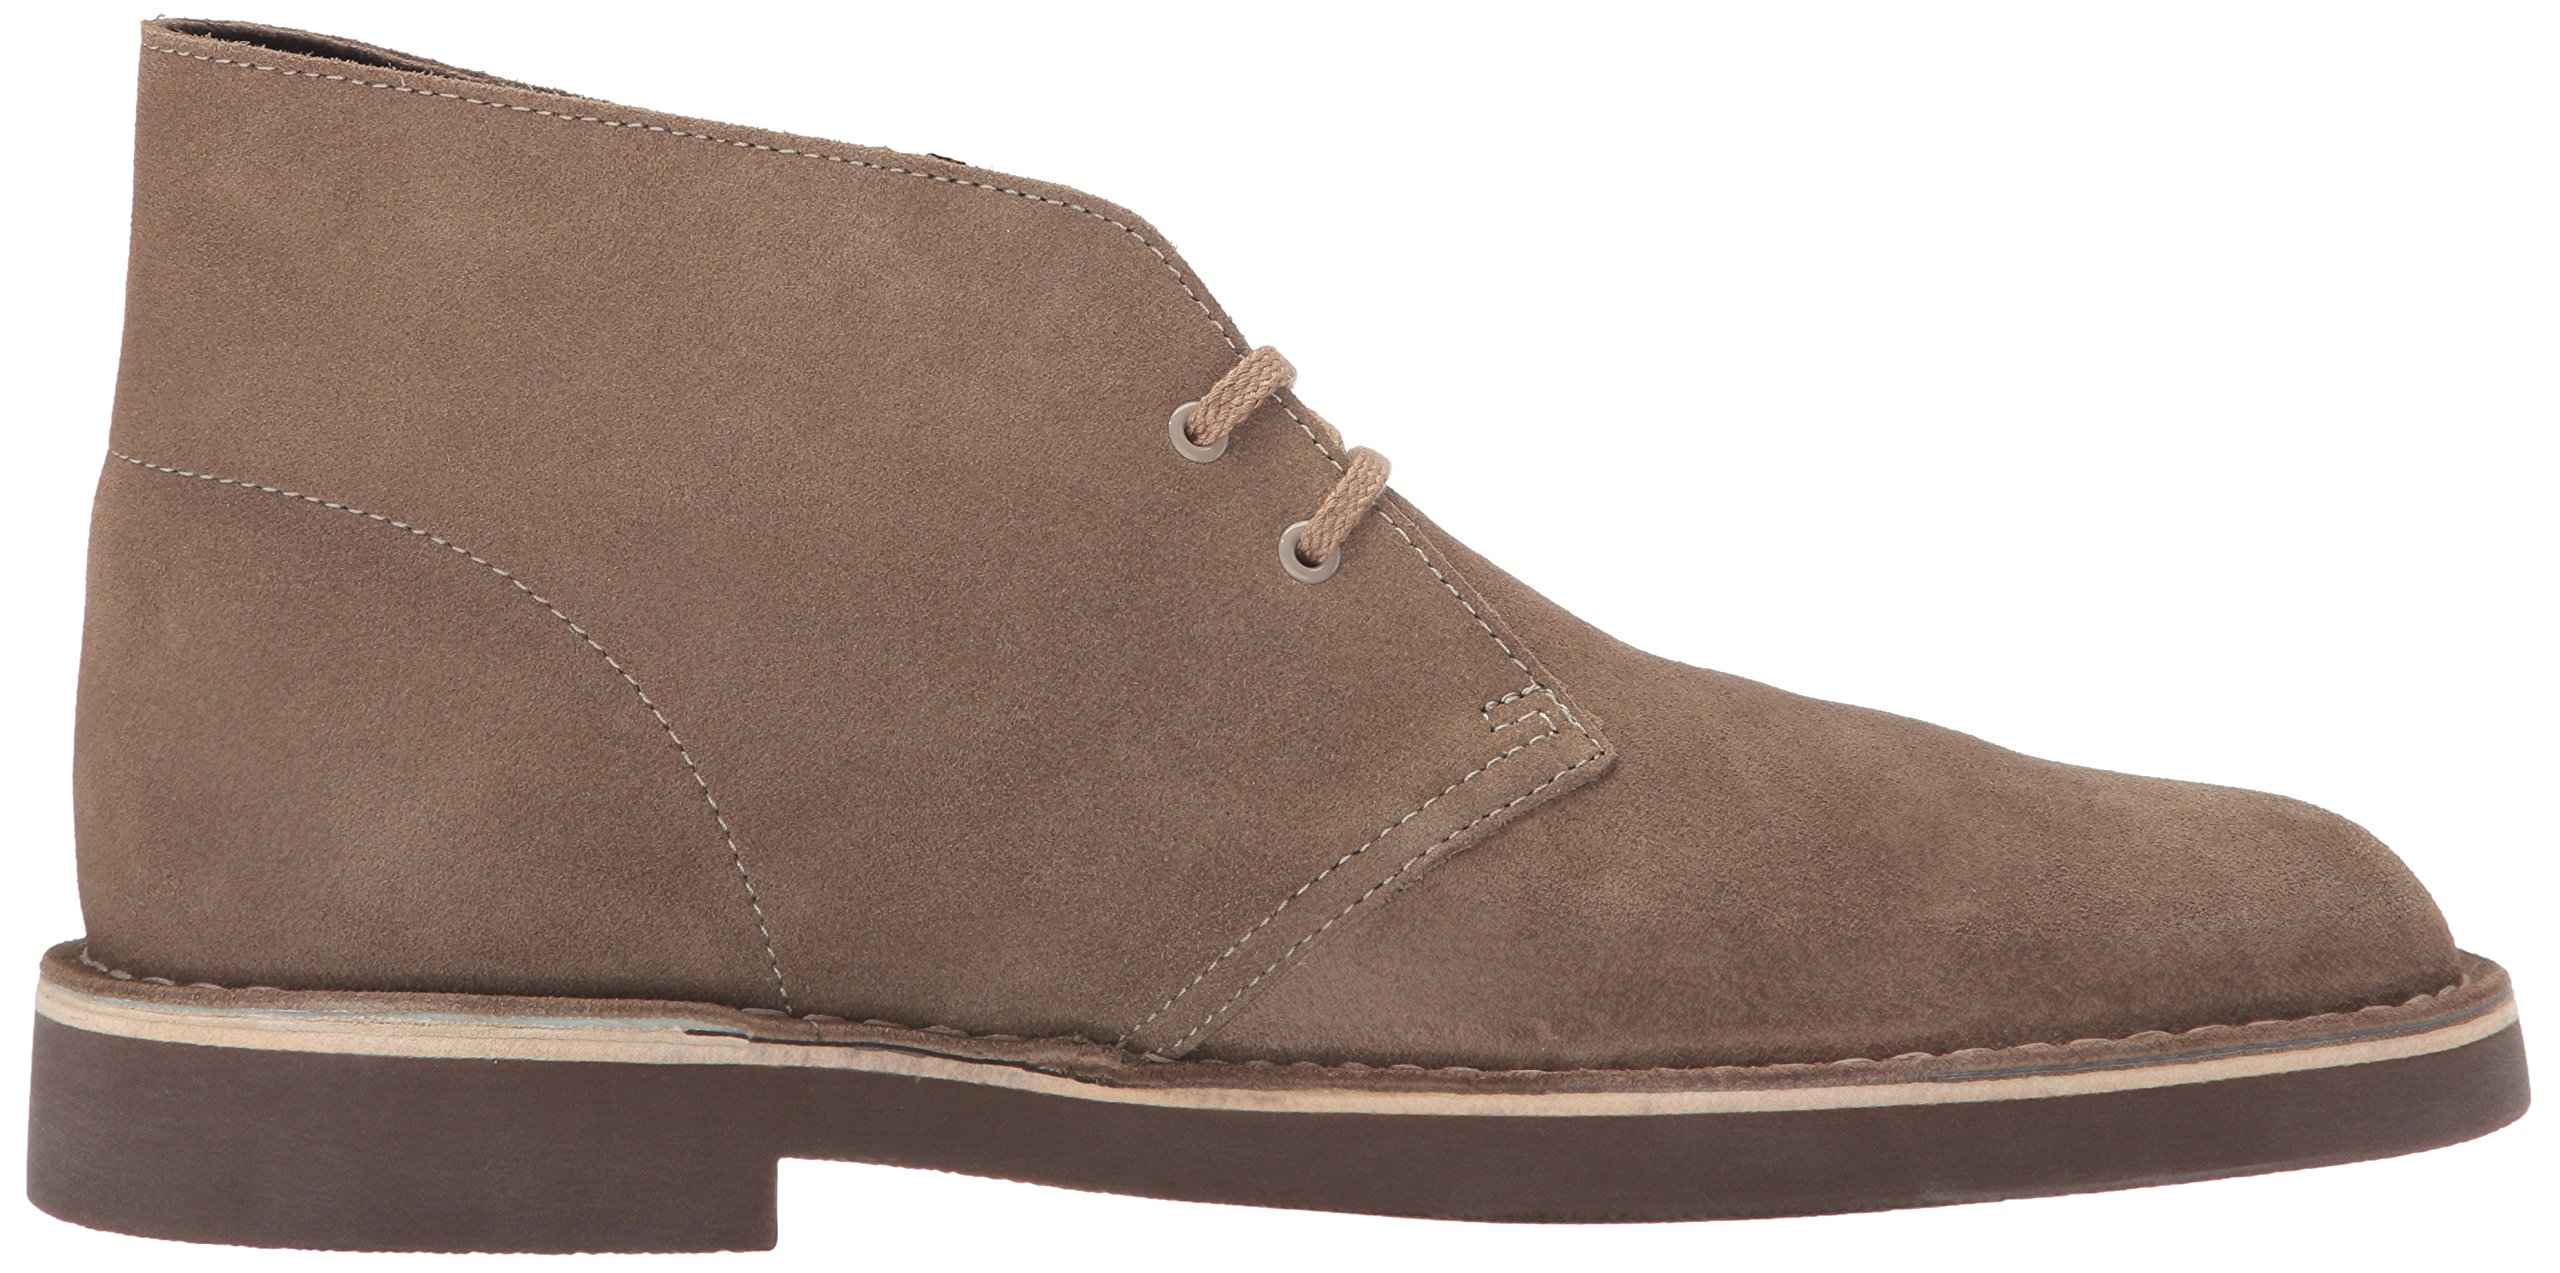 Clarks Men's Bushacre 2 Chukka Boot,Sand Sable,10 M US by CLARKS (Image #7)